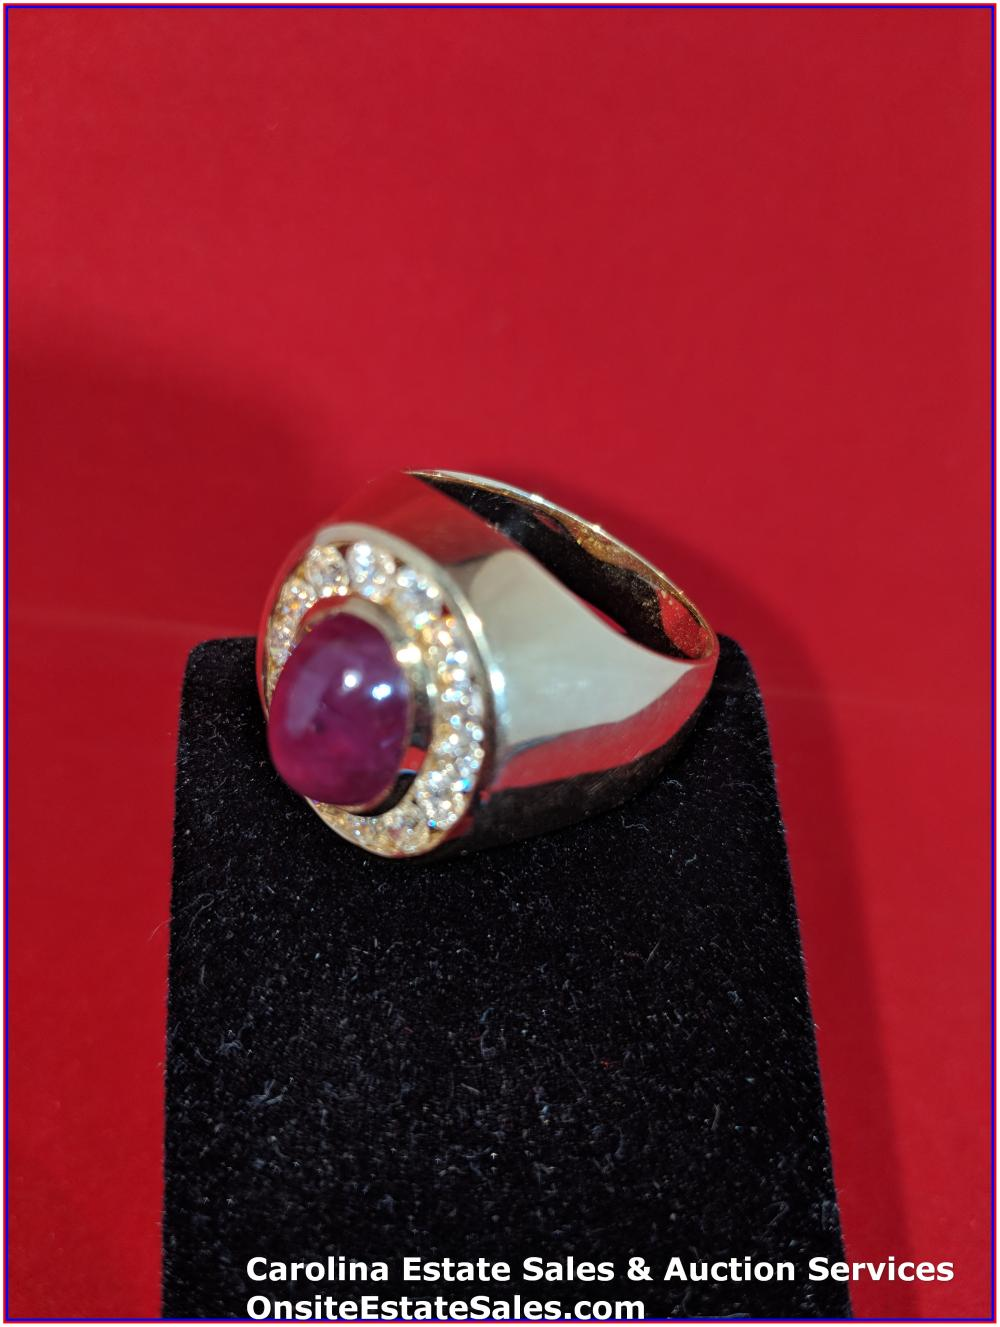 14K Gem Ring Gold 18 Grams Total Weight; 8 cts Cabochon Ruby; 1.9 cts